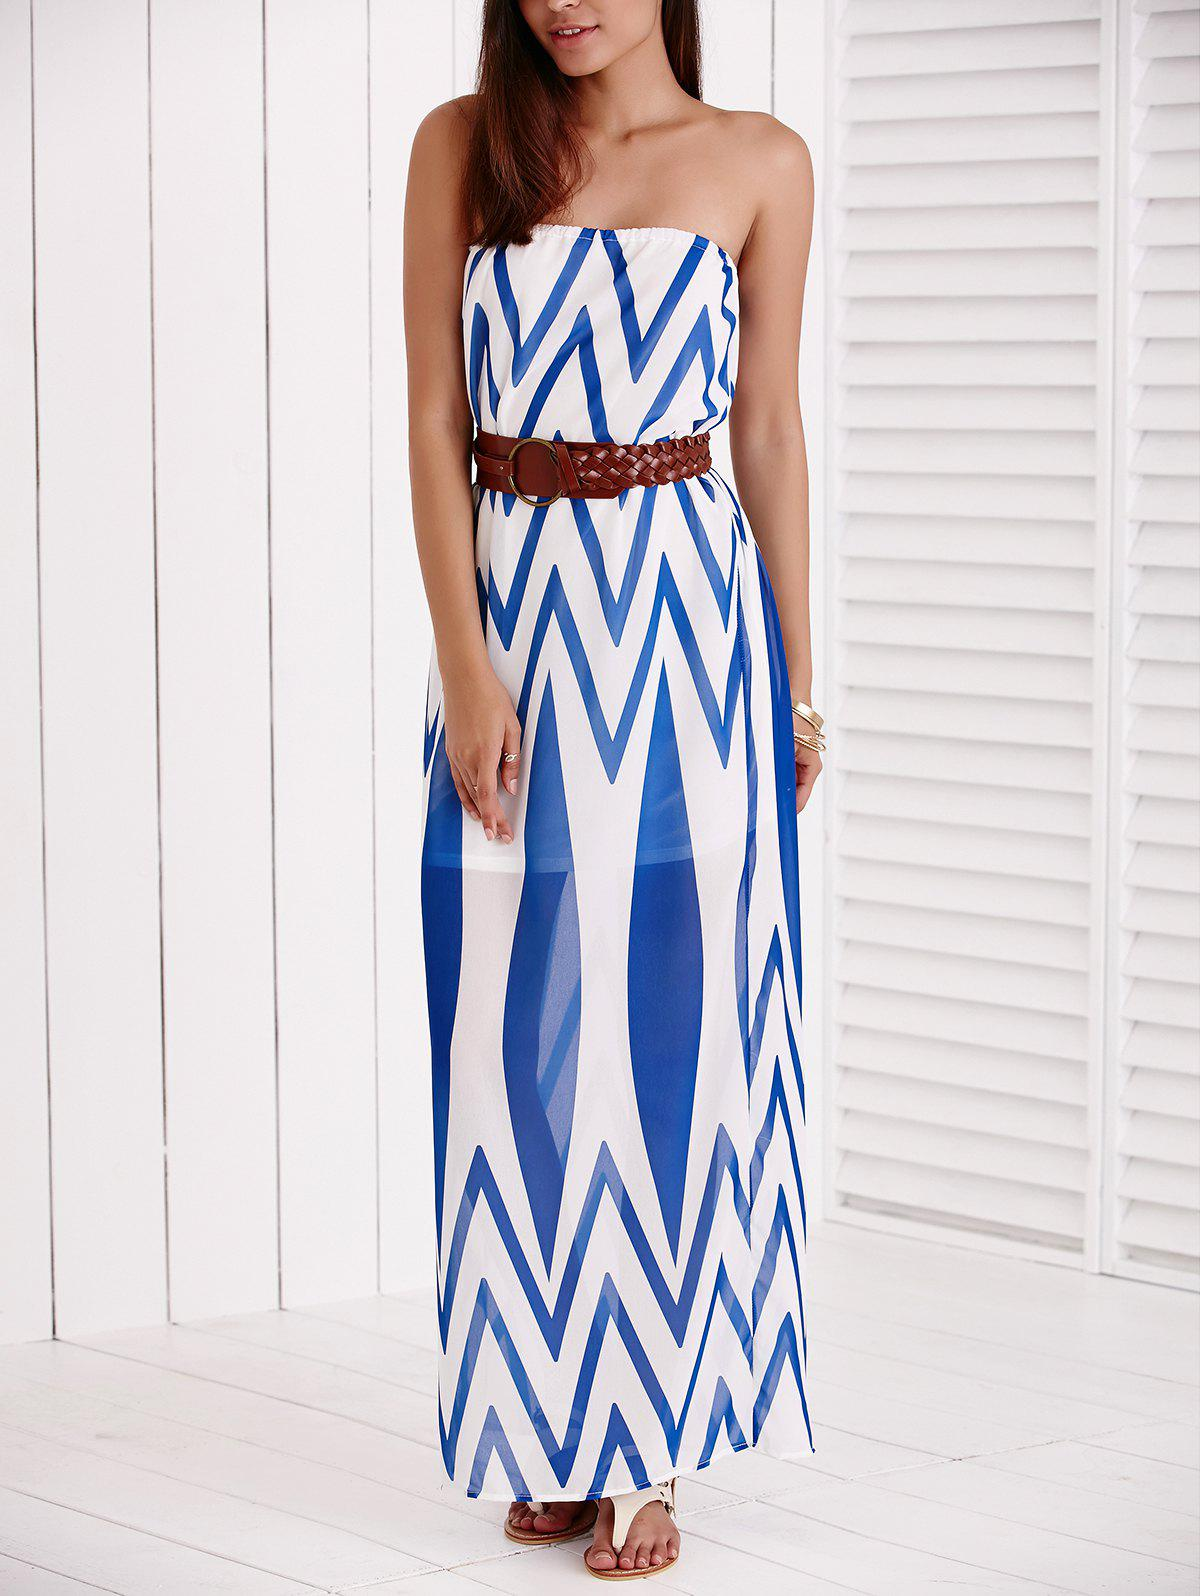 Brief Strapless Zig Zag Belted Dress